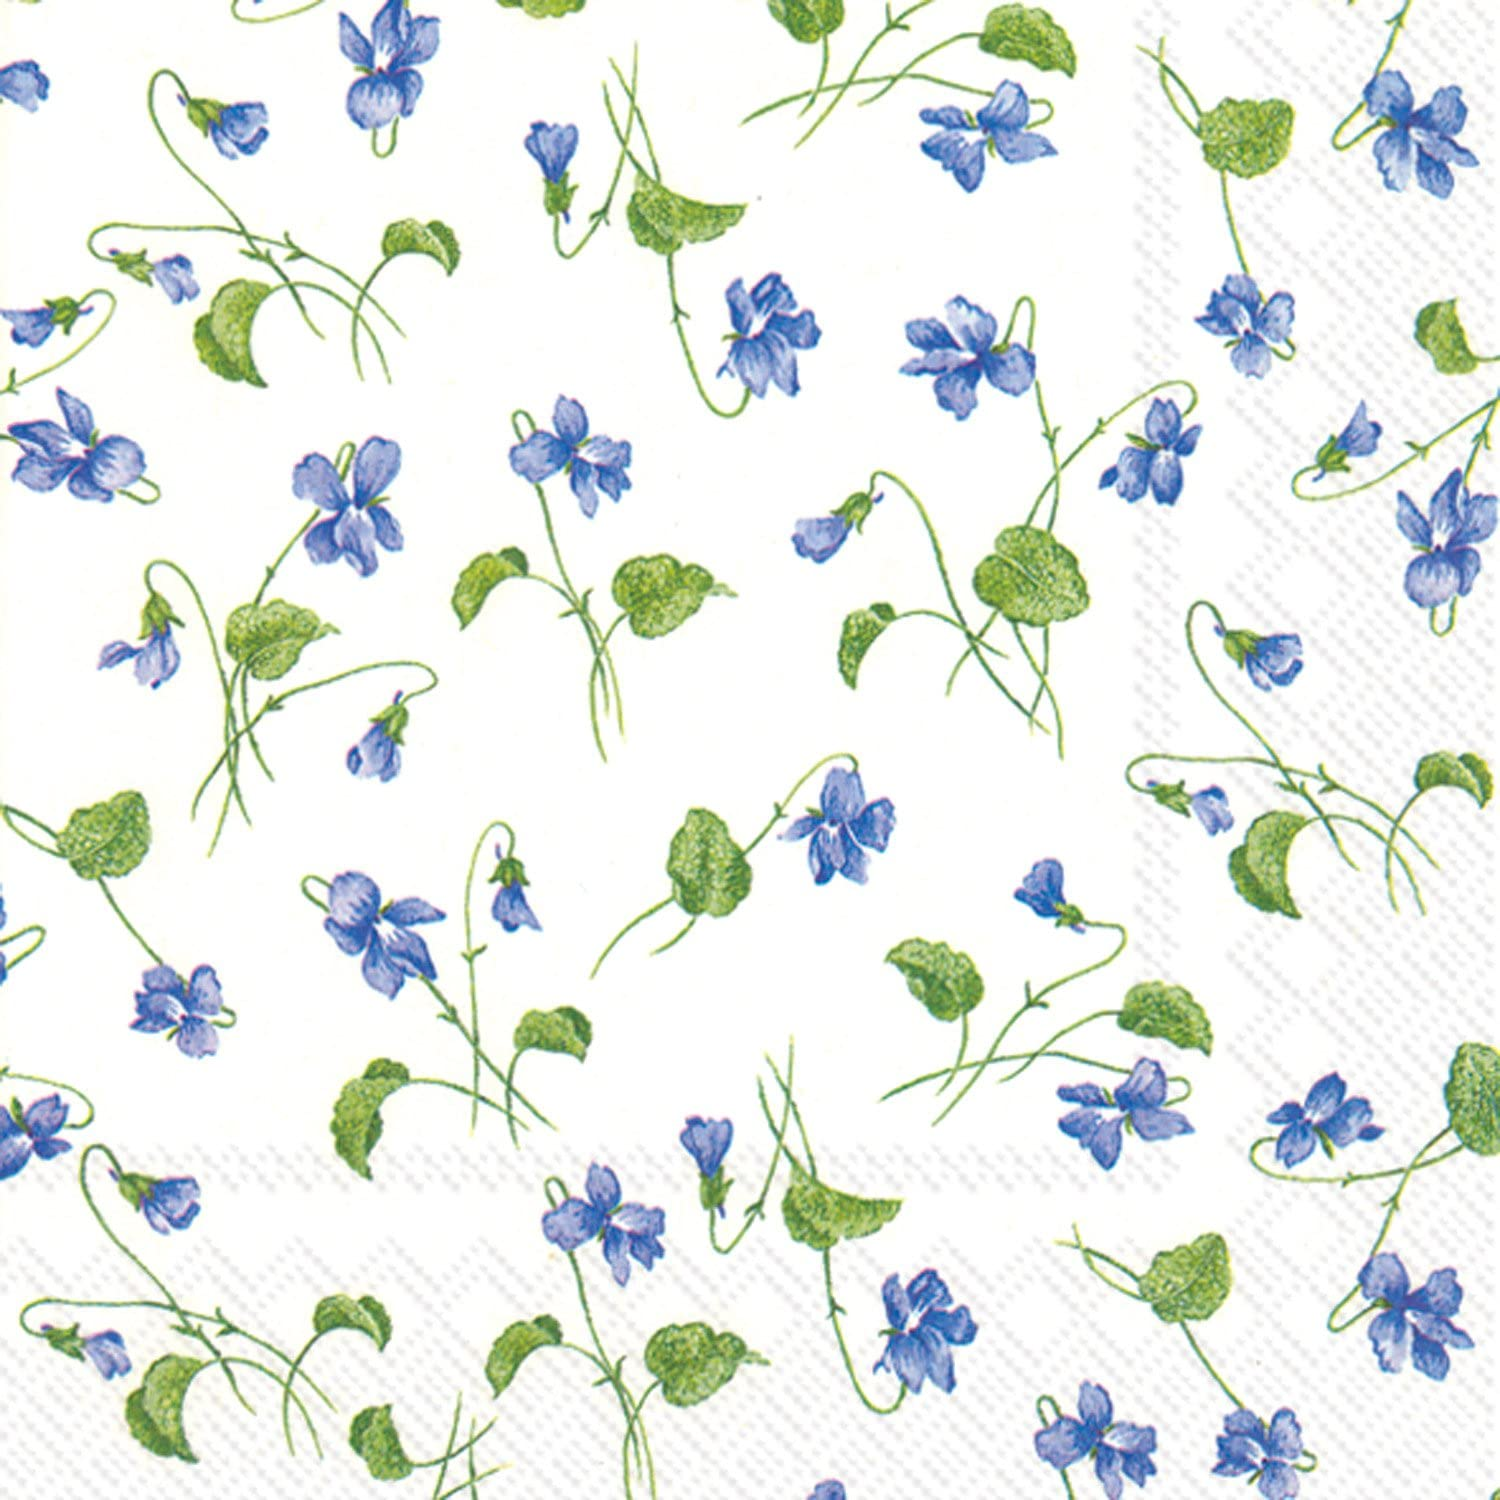 Celebrate the Home Floral 3-Ply Paper Luncheon Napkins, Viola Riviniana, 20 Count